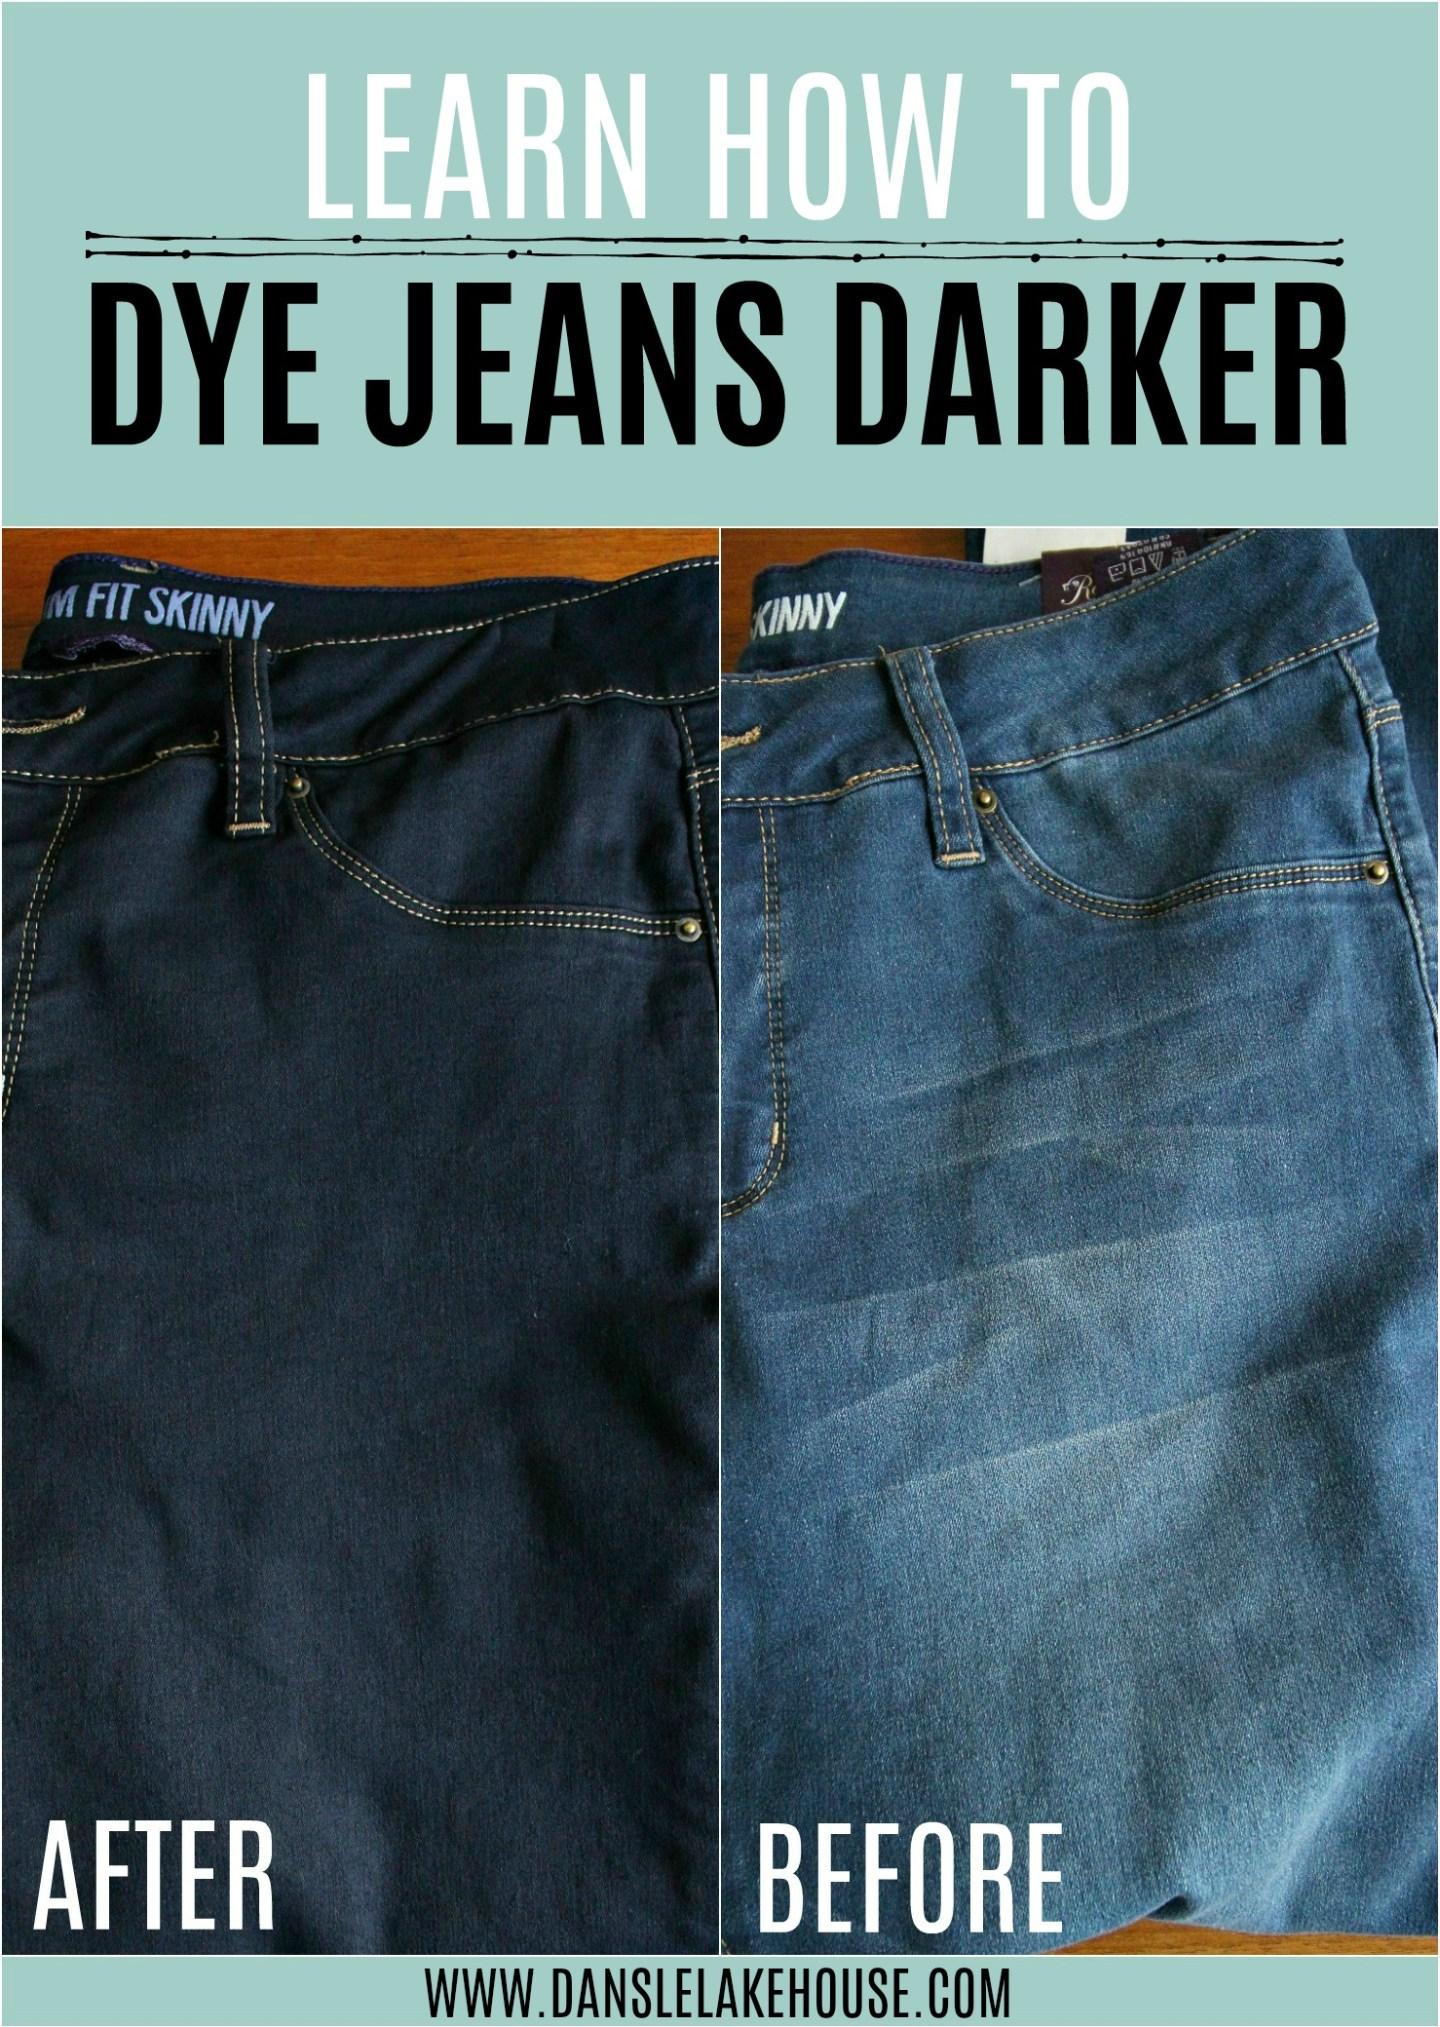 Learn how to dye jeans darker with these easy clothes dyeing tutorial. Dye new or old jeans a dark blue in the wash. #dyeing #dyeingclothes